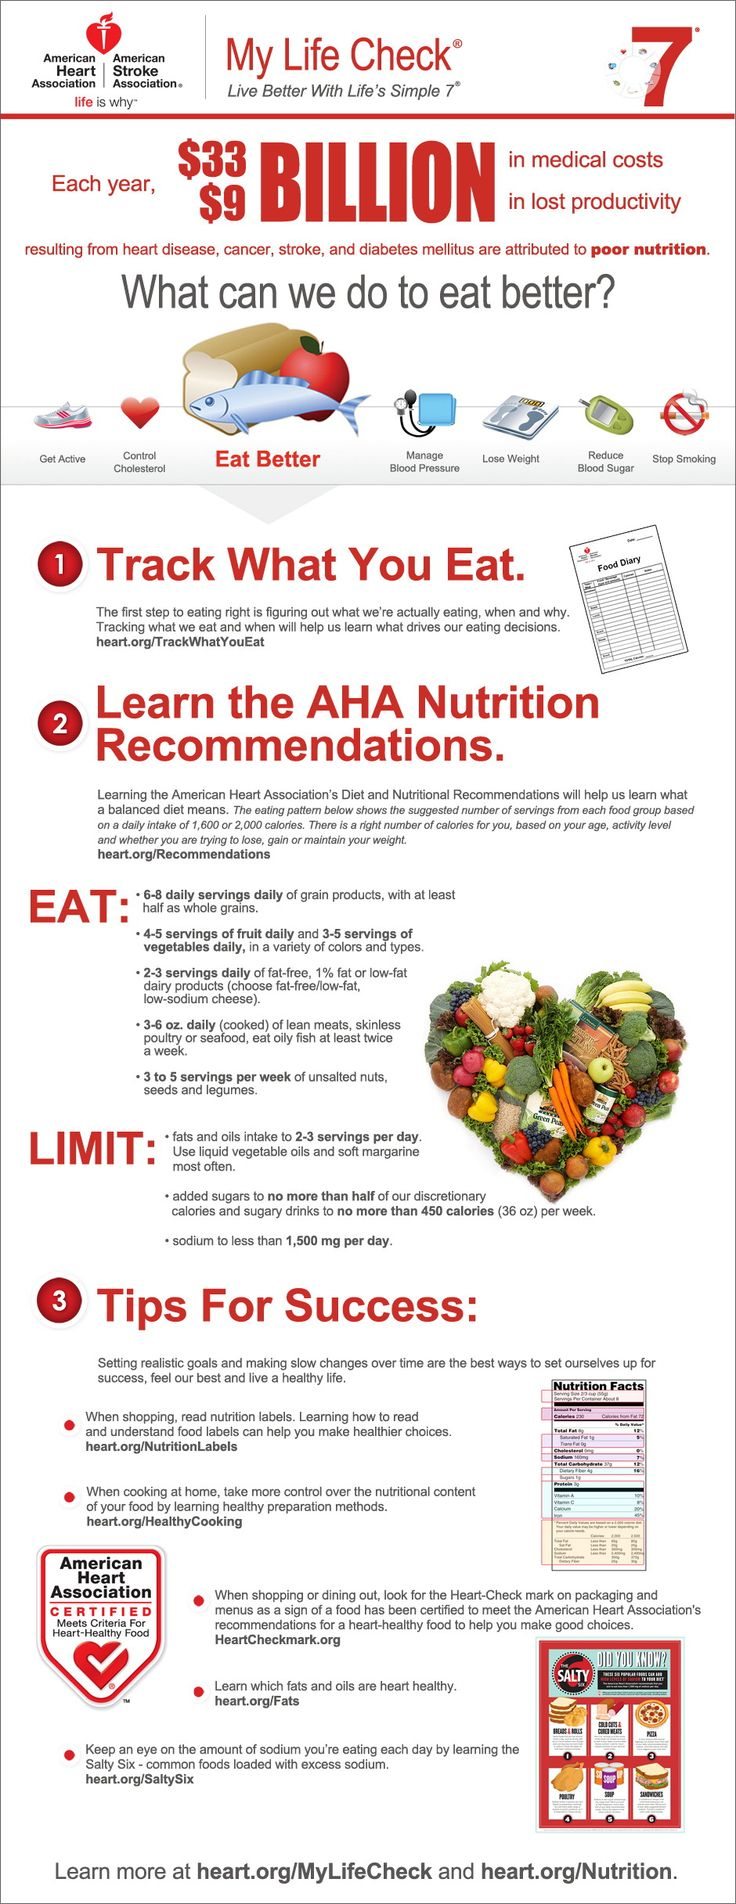 A great infographic from the American Heart Association on what we can do to eat better.